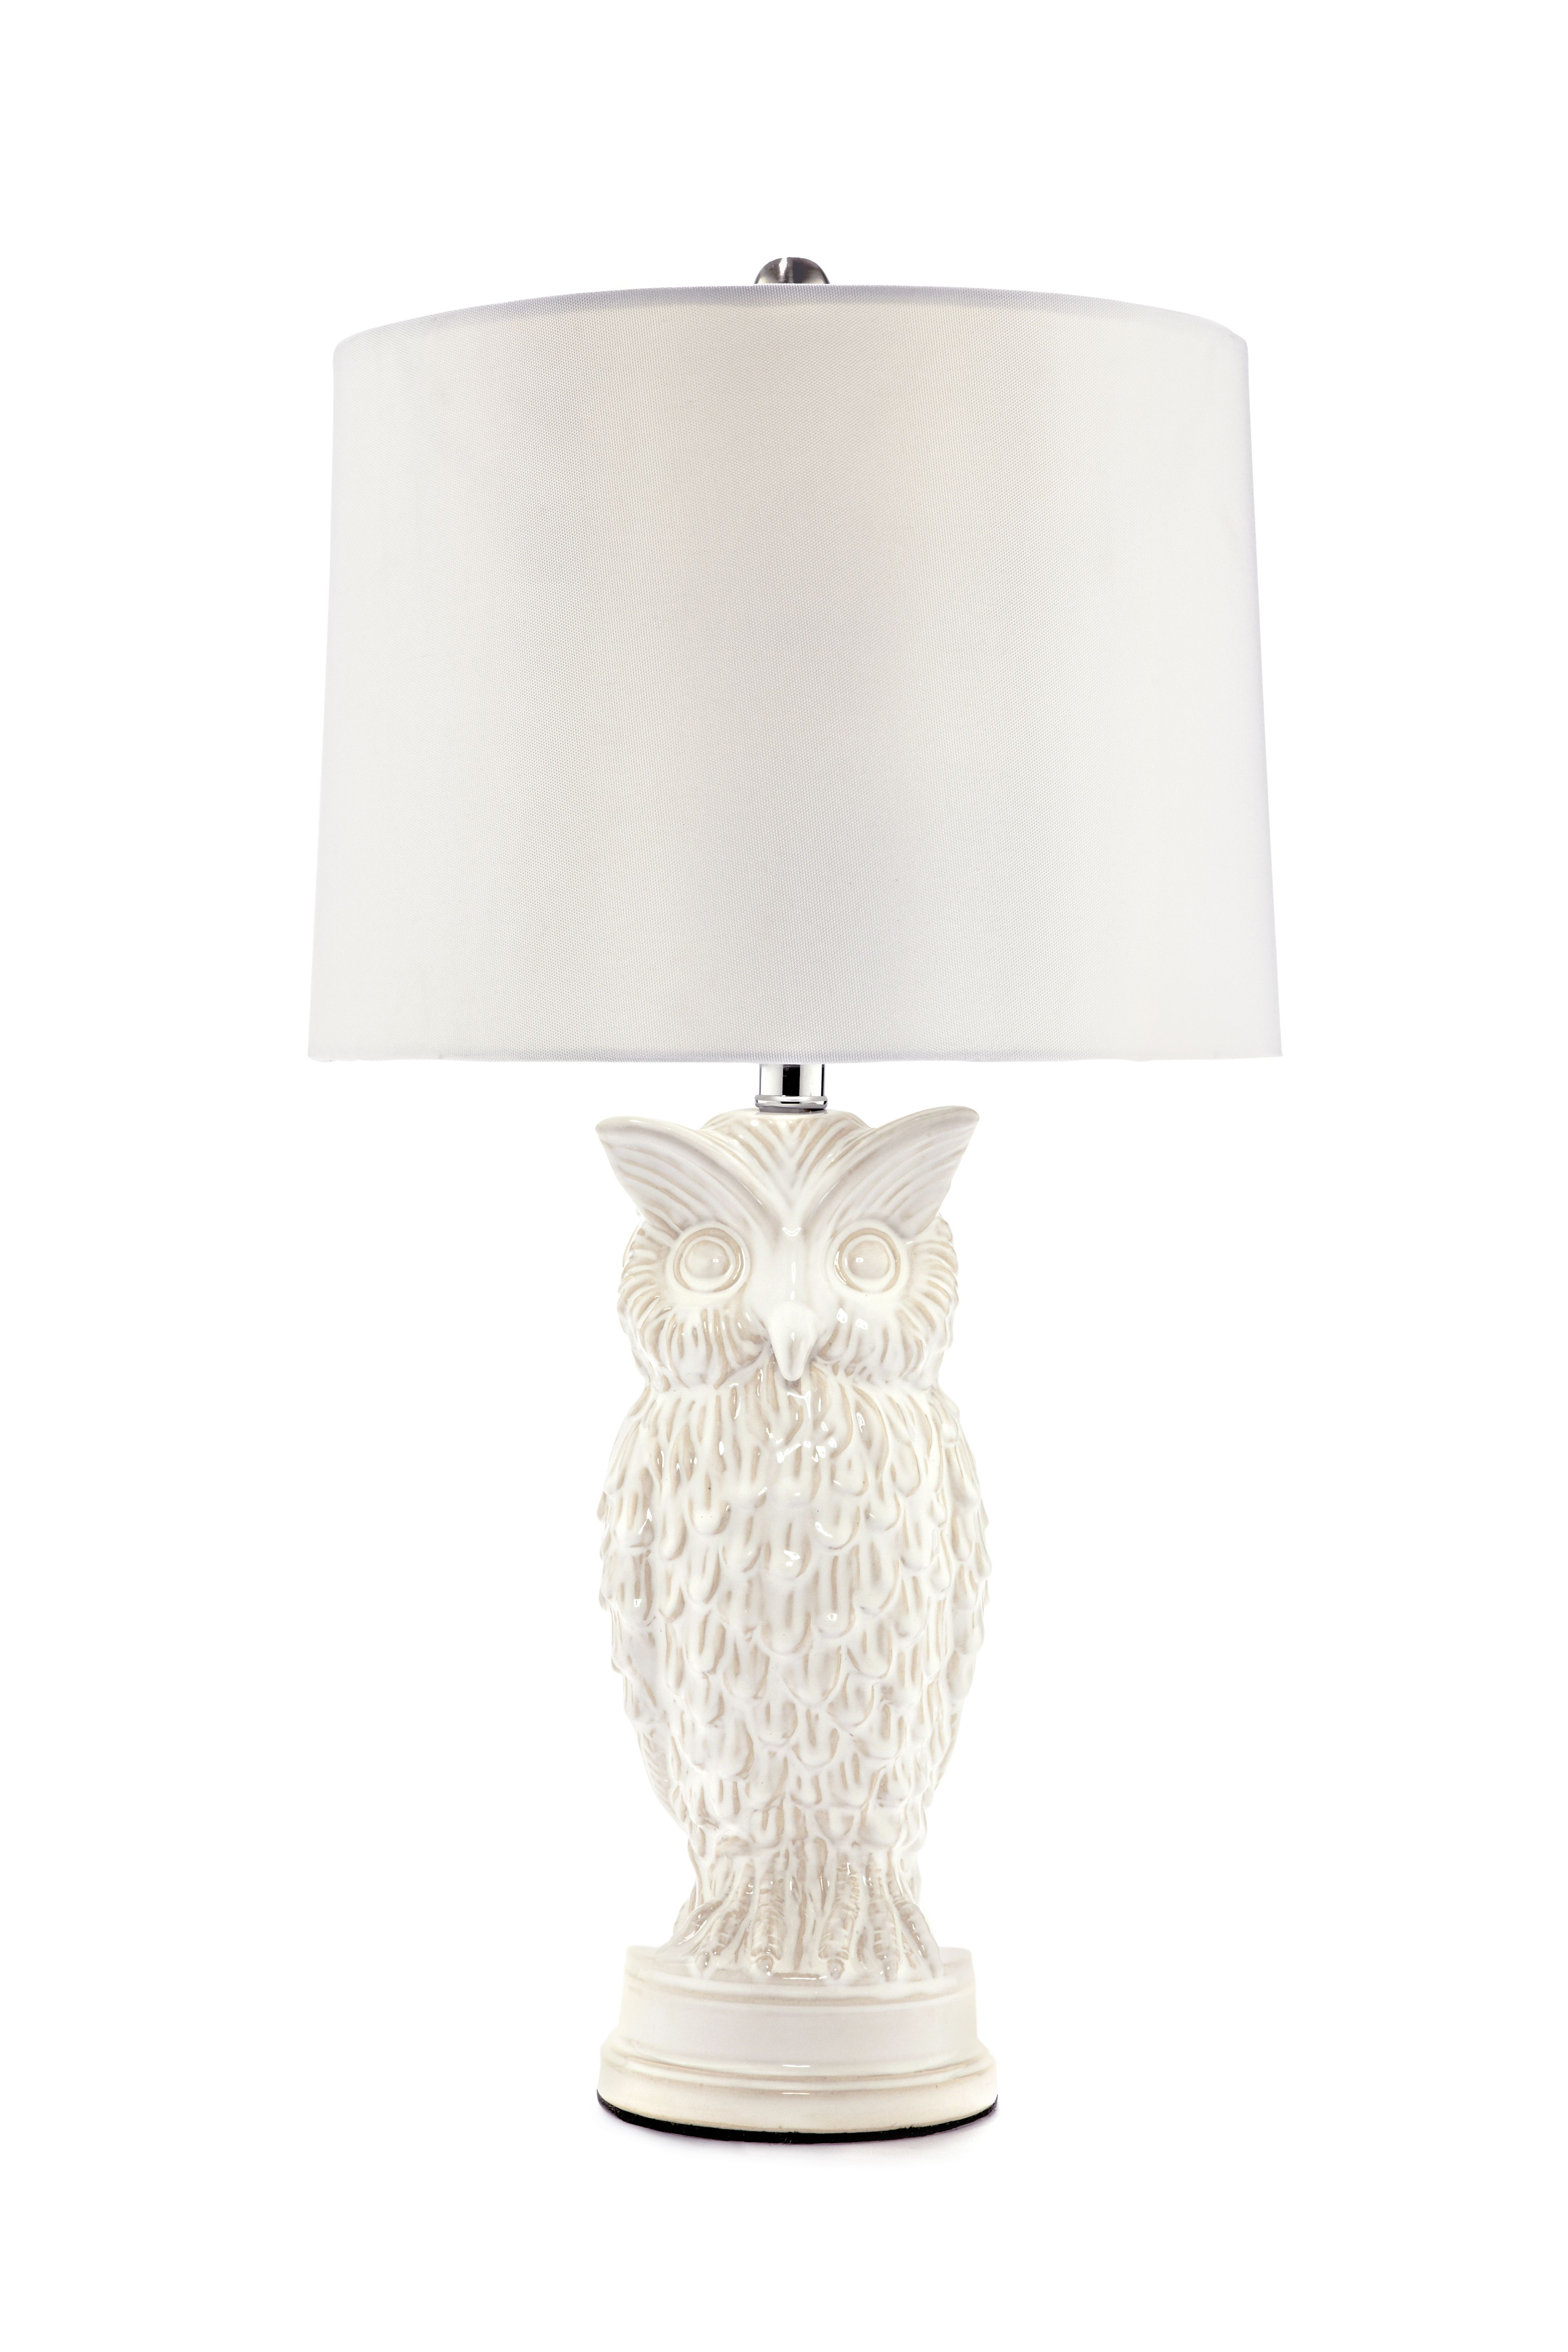 Turn On The White U2013 Owl Lamp JCPenney